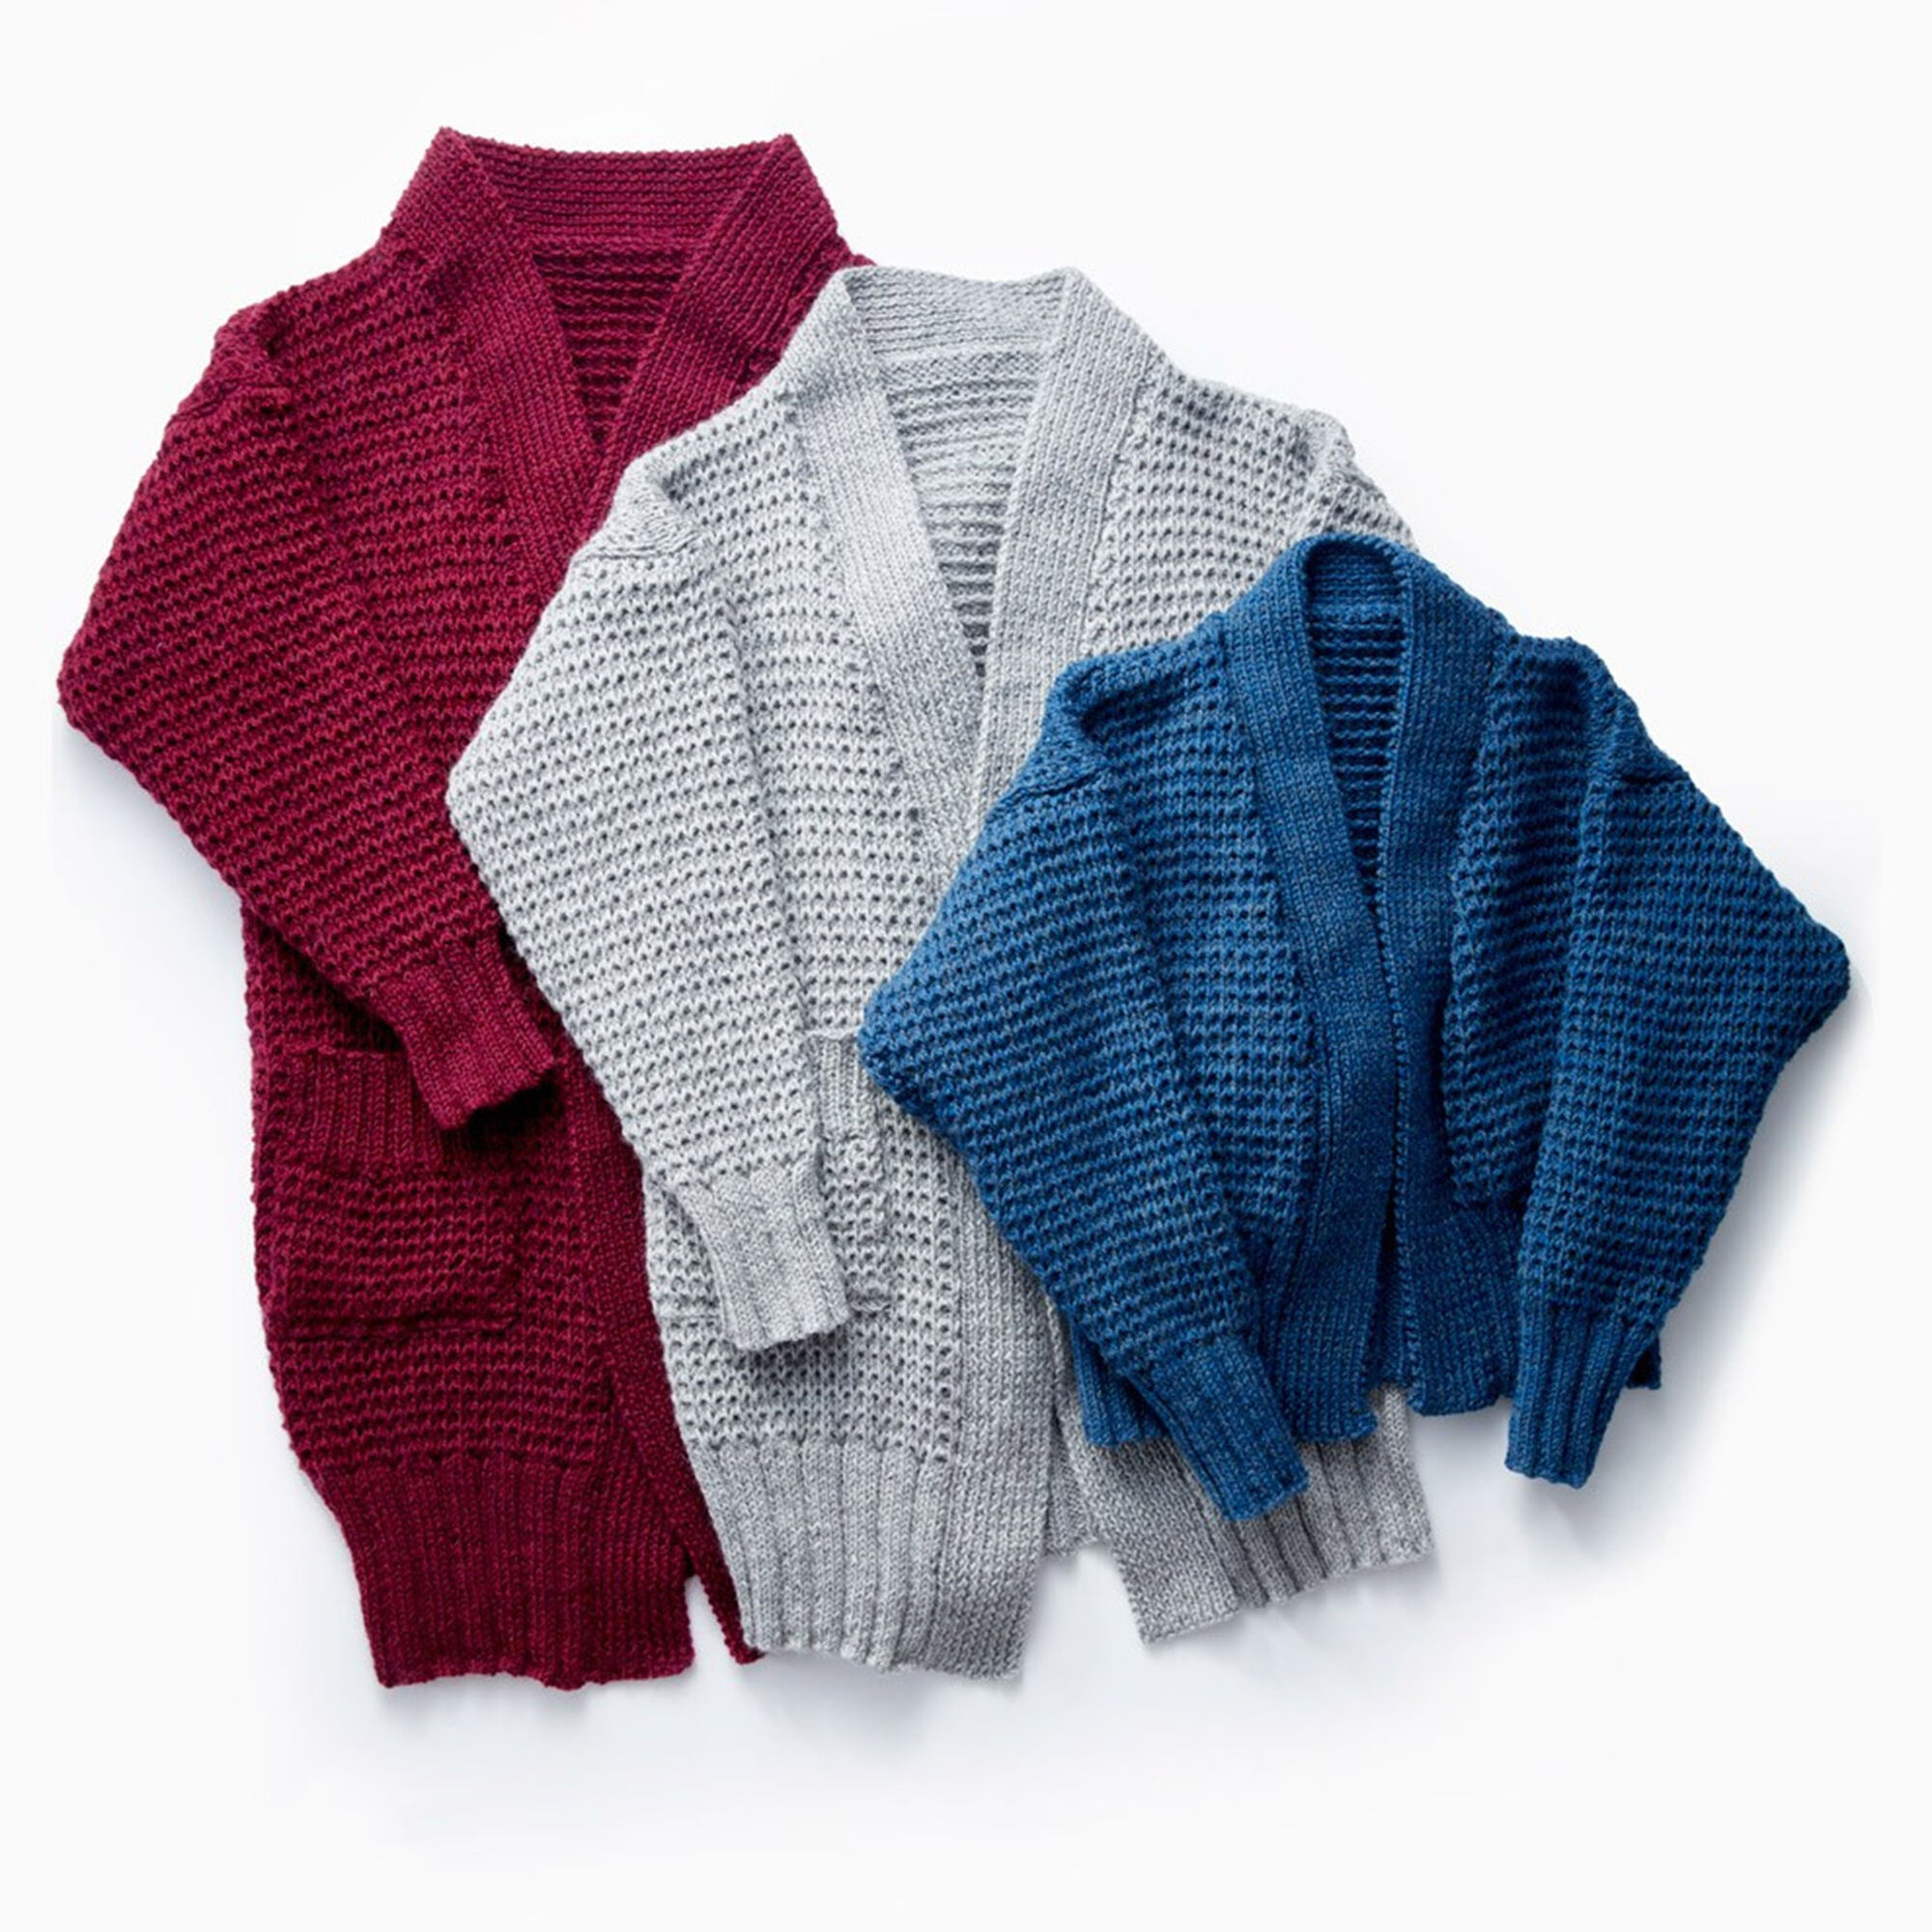 Knitting Websites Canada : Patons long weekend knit cardigan lo xs s